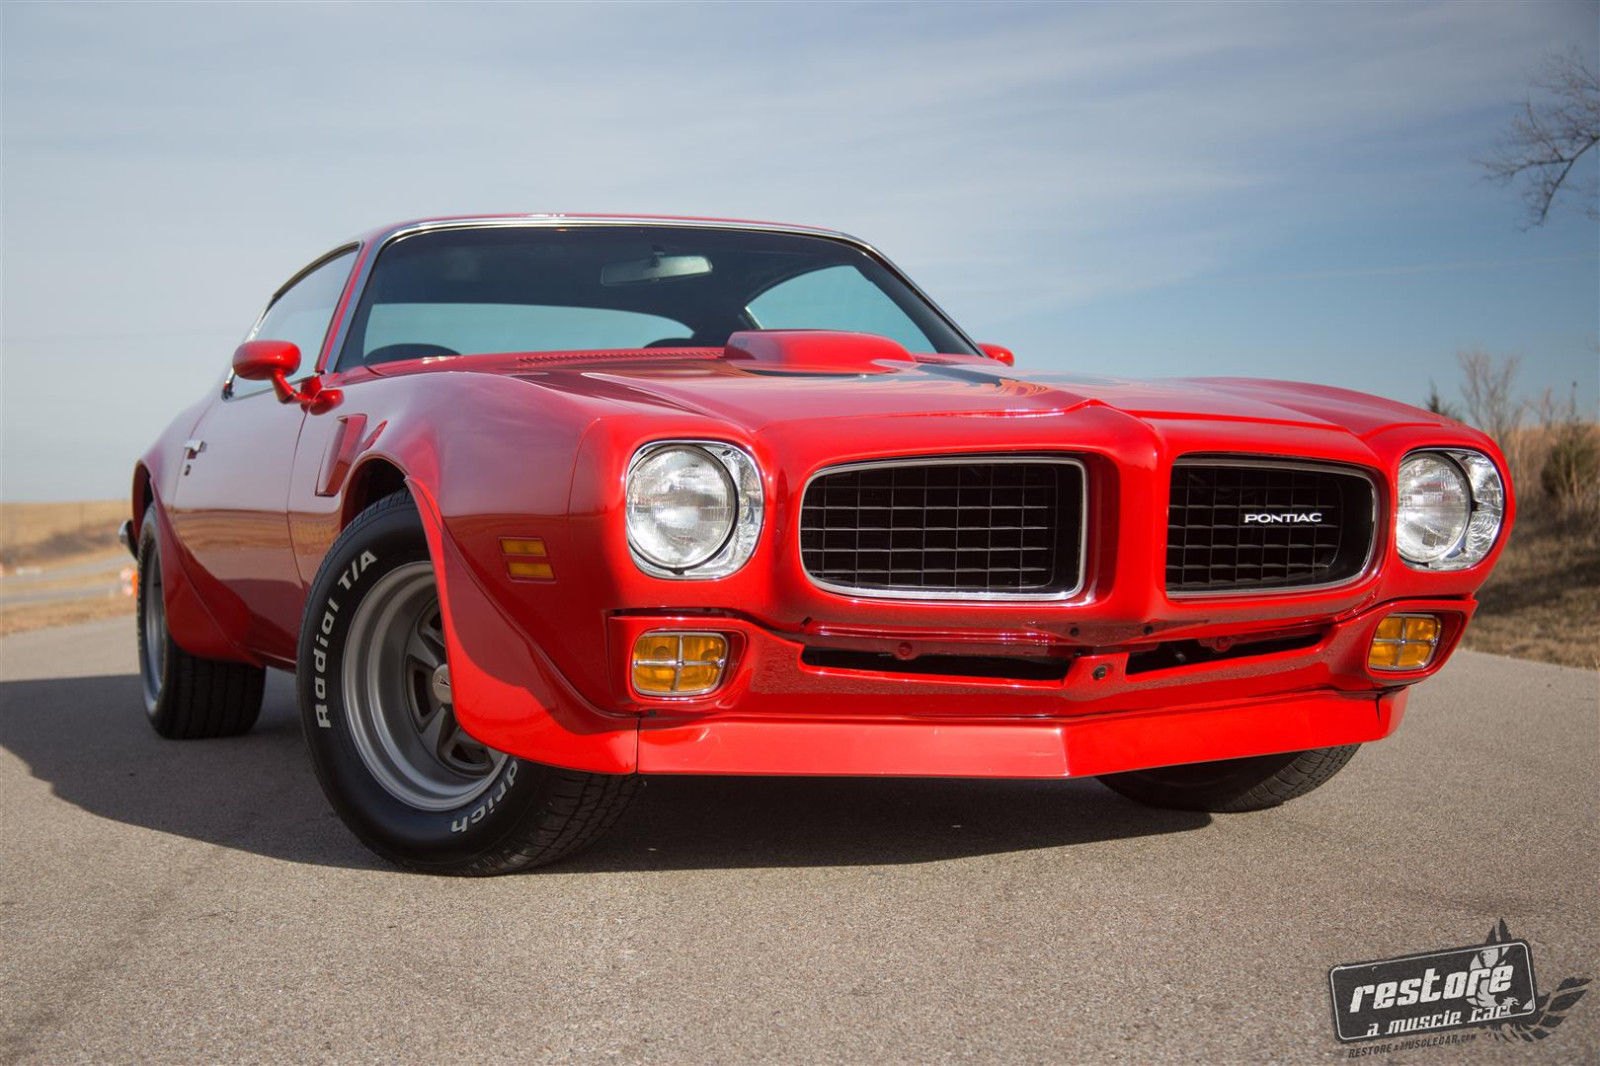 Can We All Just Agree That 1973 Is The Best Looking Model Year of Trans-Am Ever? Let's Use This One As An Example